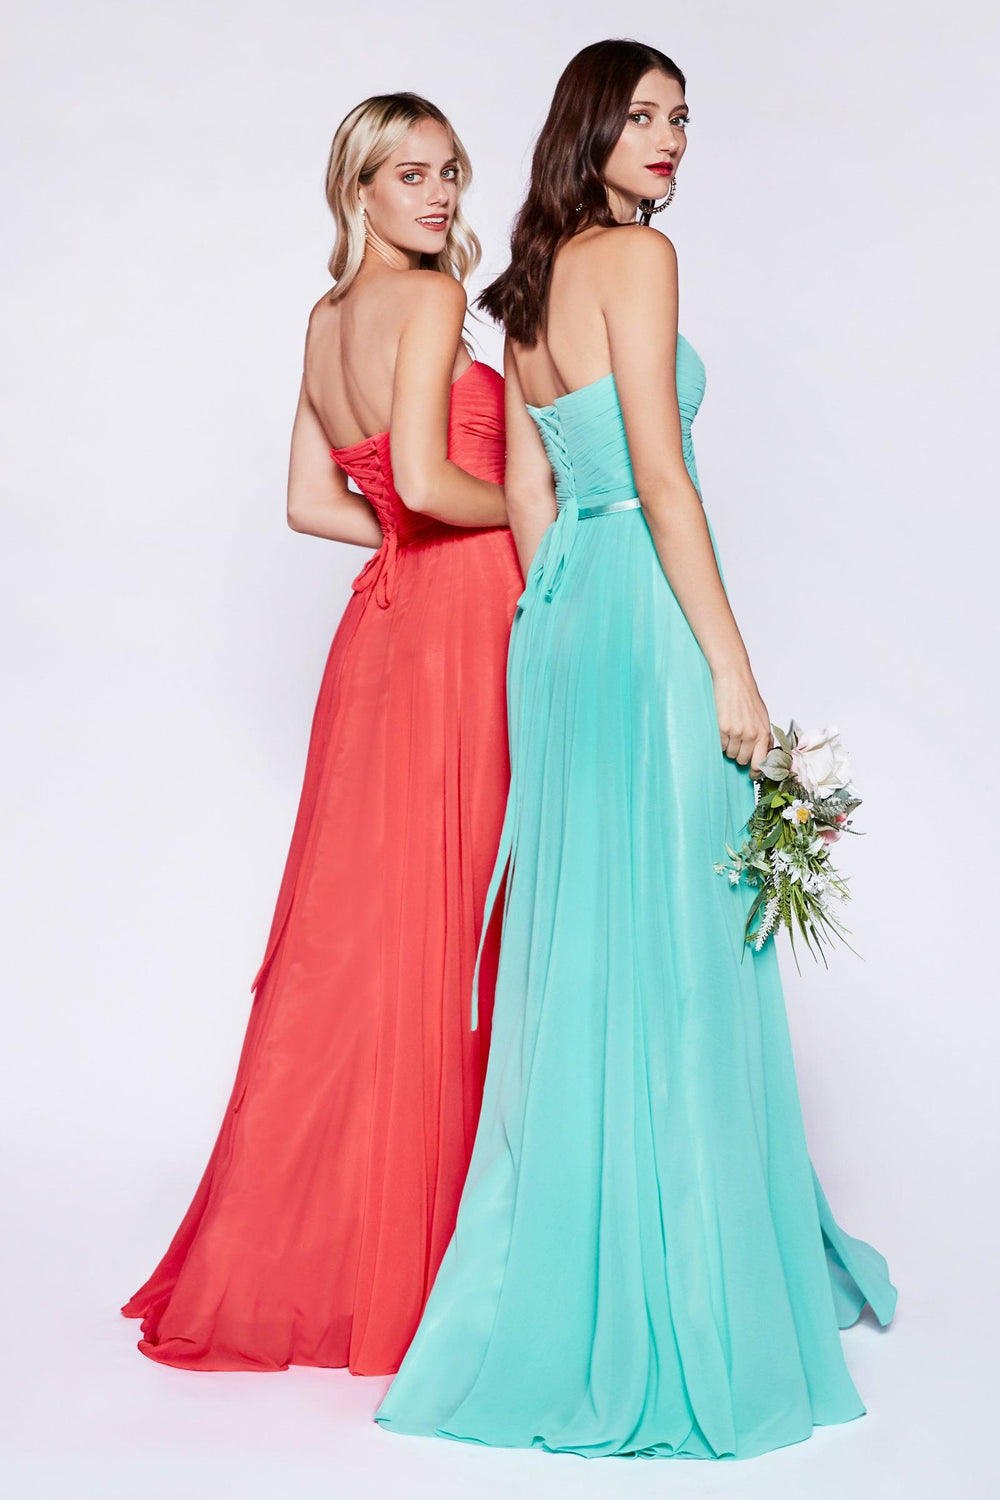 Strapless Chiffon Empire Waist Prom Dress - The Dress Outlet